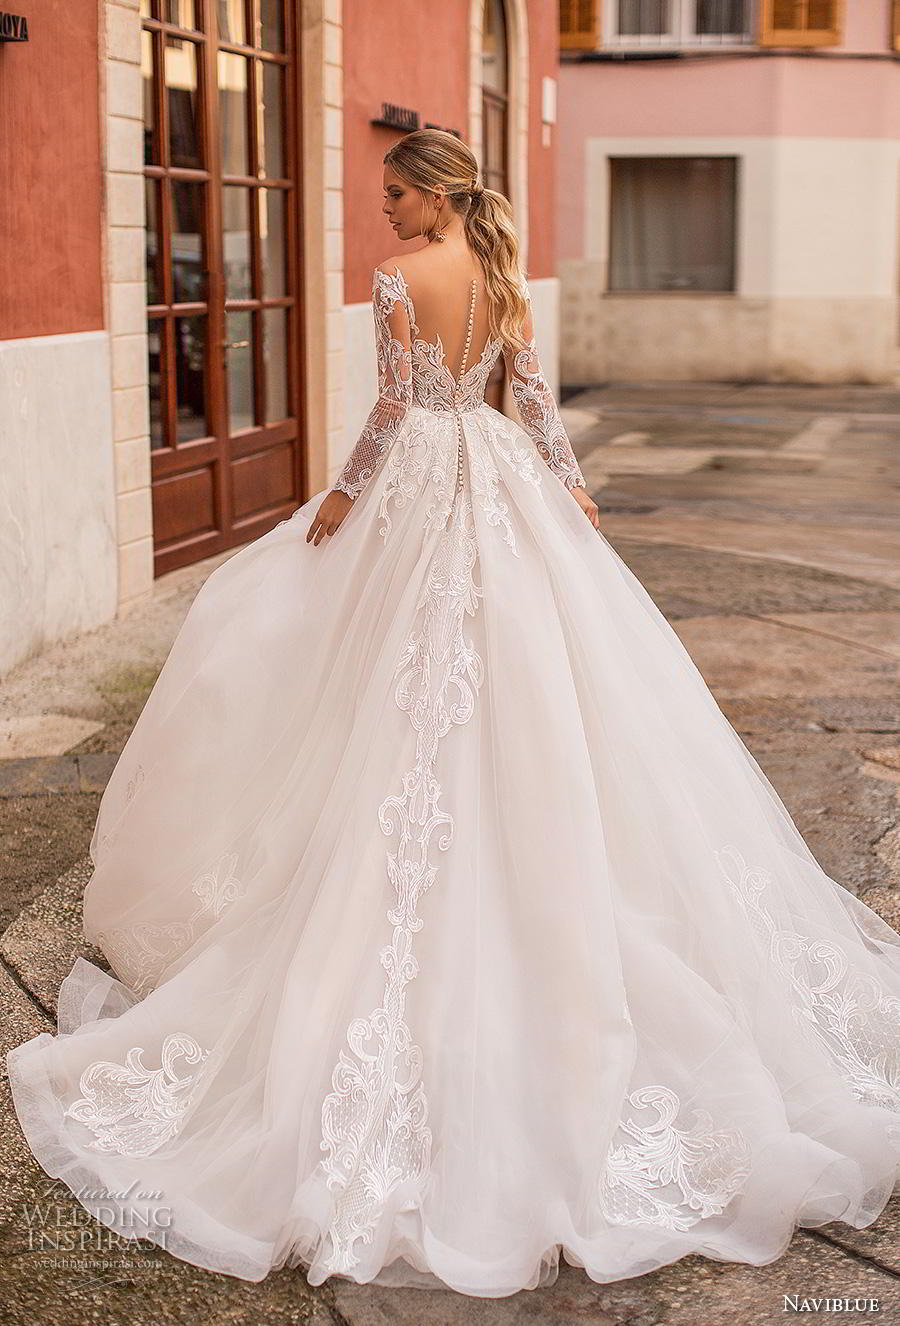 641c8895a2e naviblue 2019 bridal long sleeves sweetheart neckline heavily embellished  bodice princess ball gown a line wedding